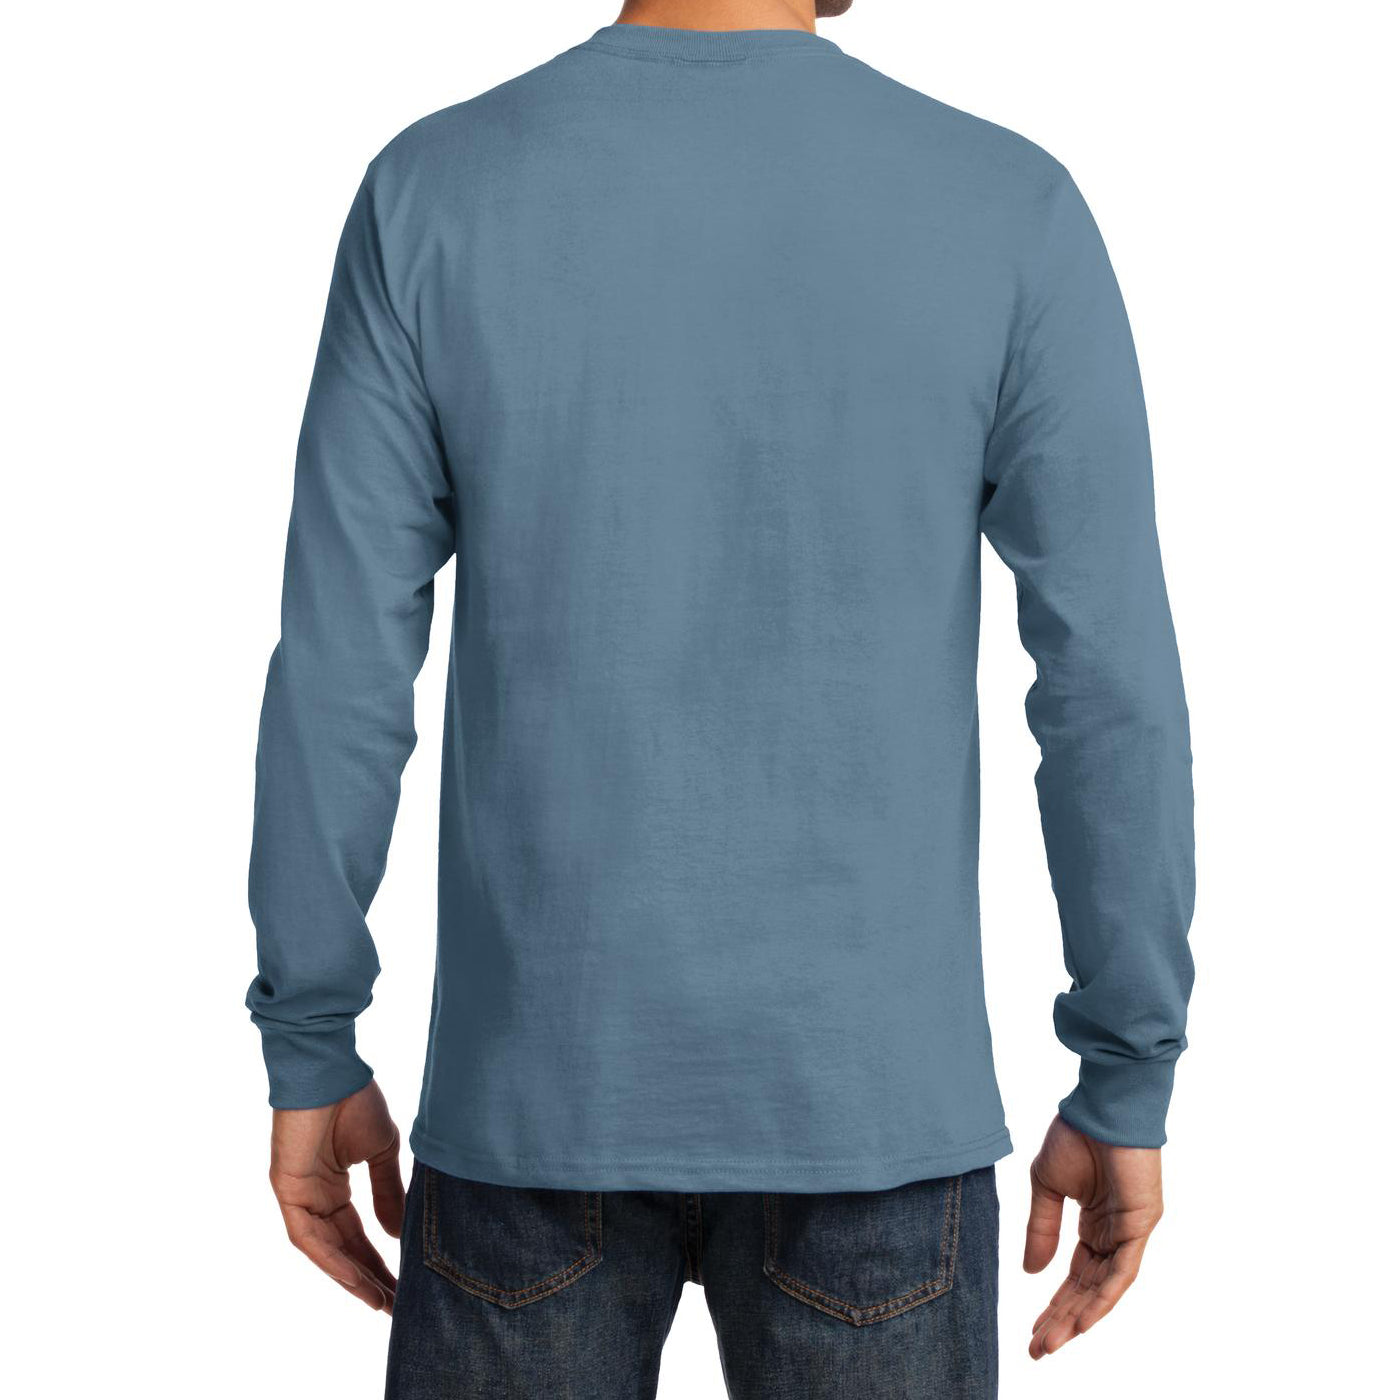 Men's Long Sleeve Essential Tee - Stonewashed Blue - Back